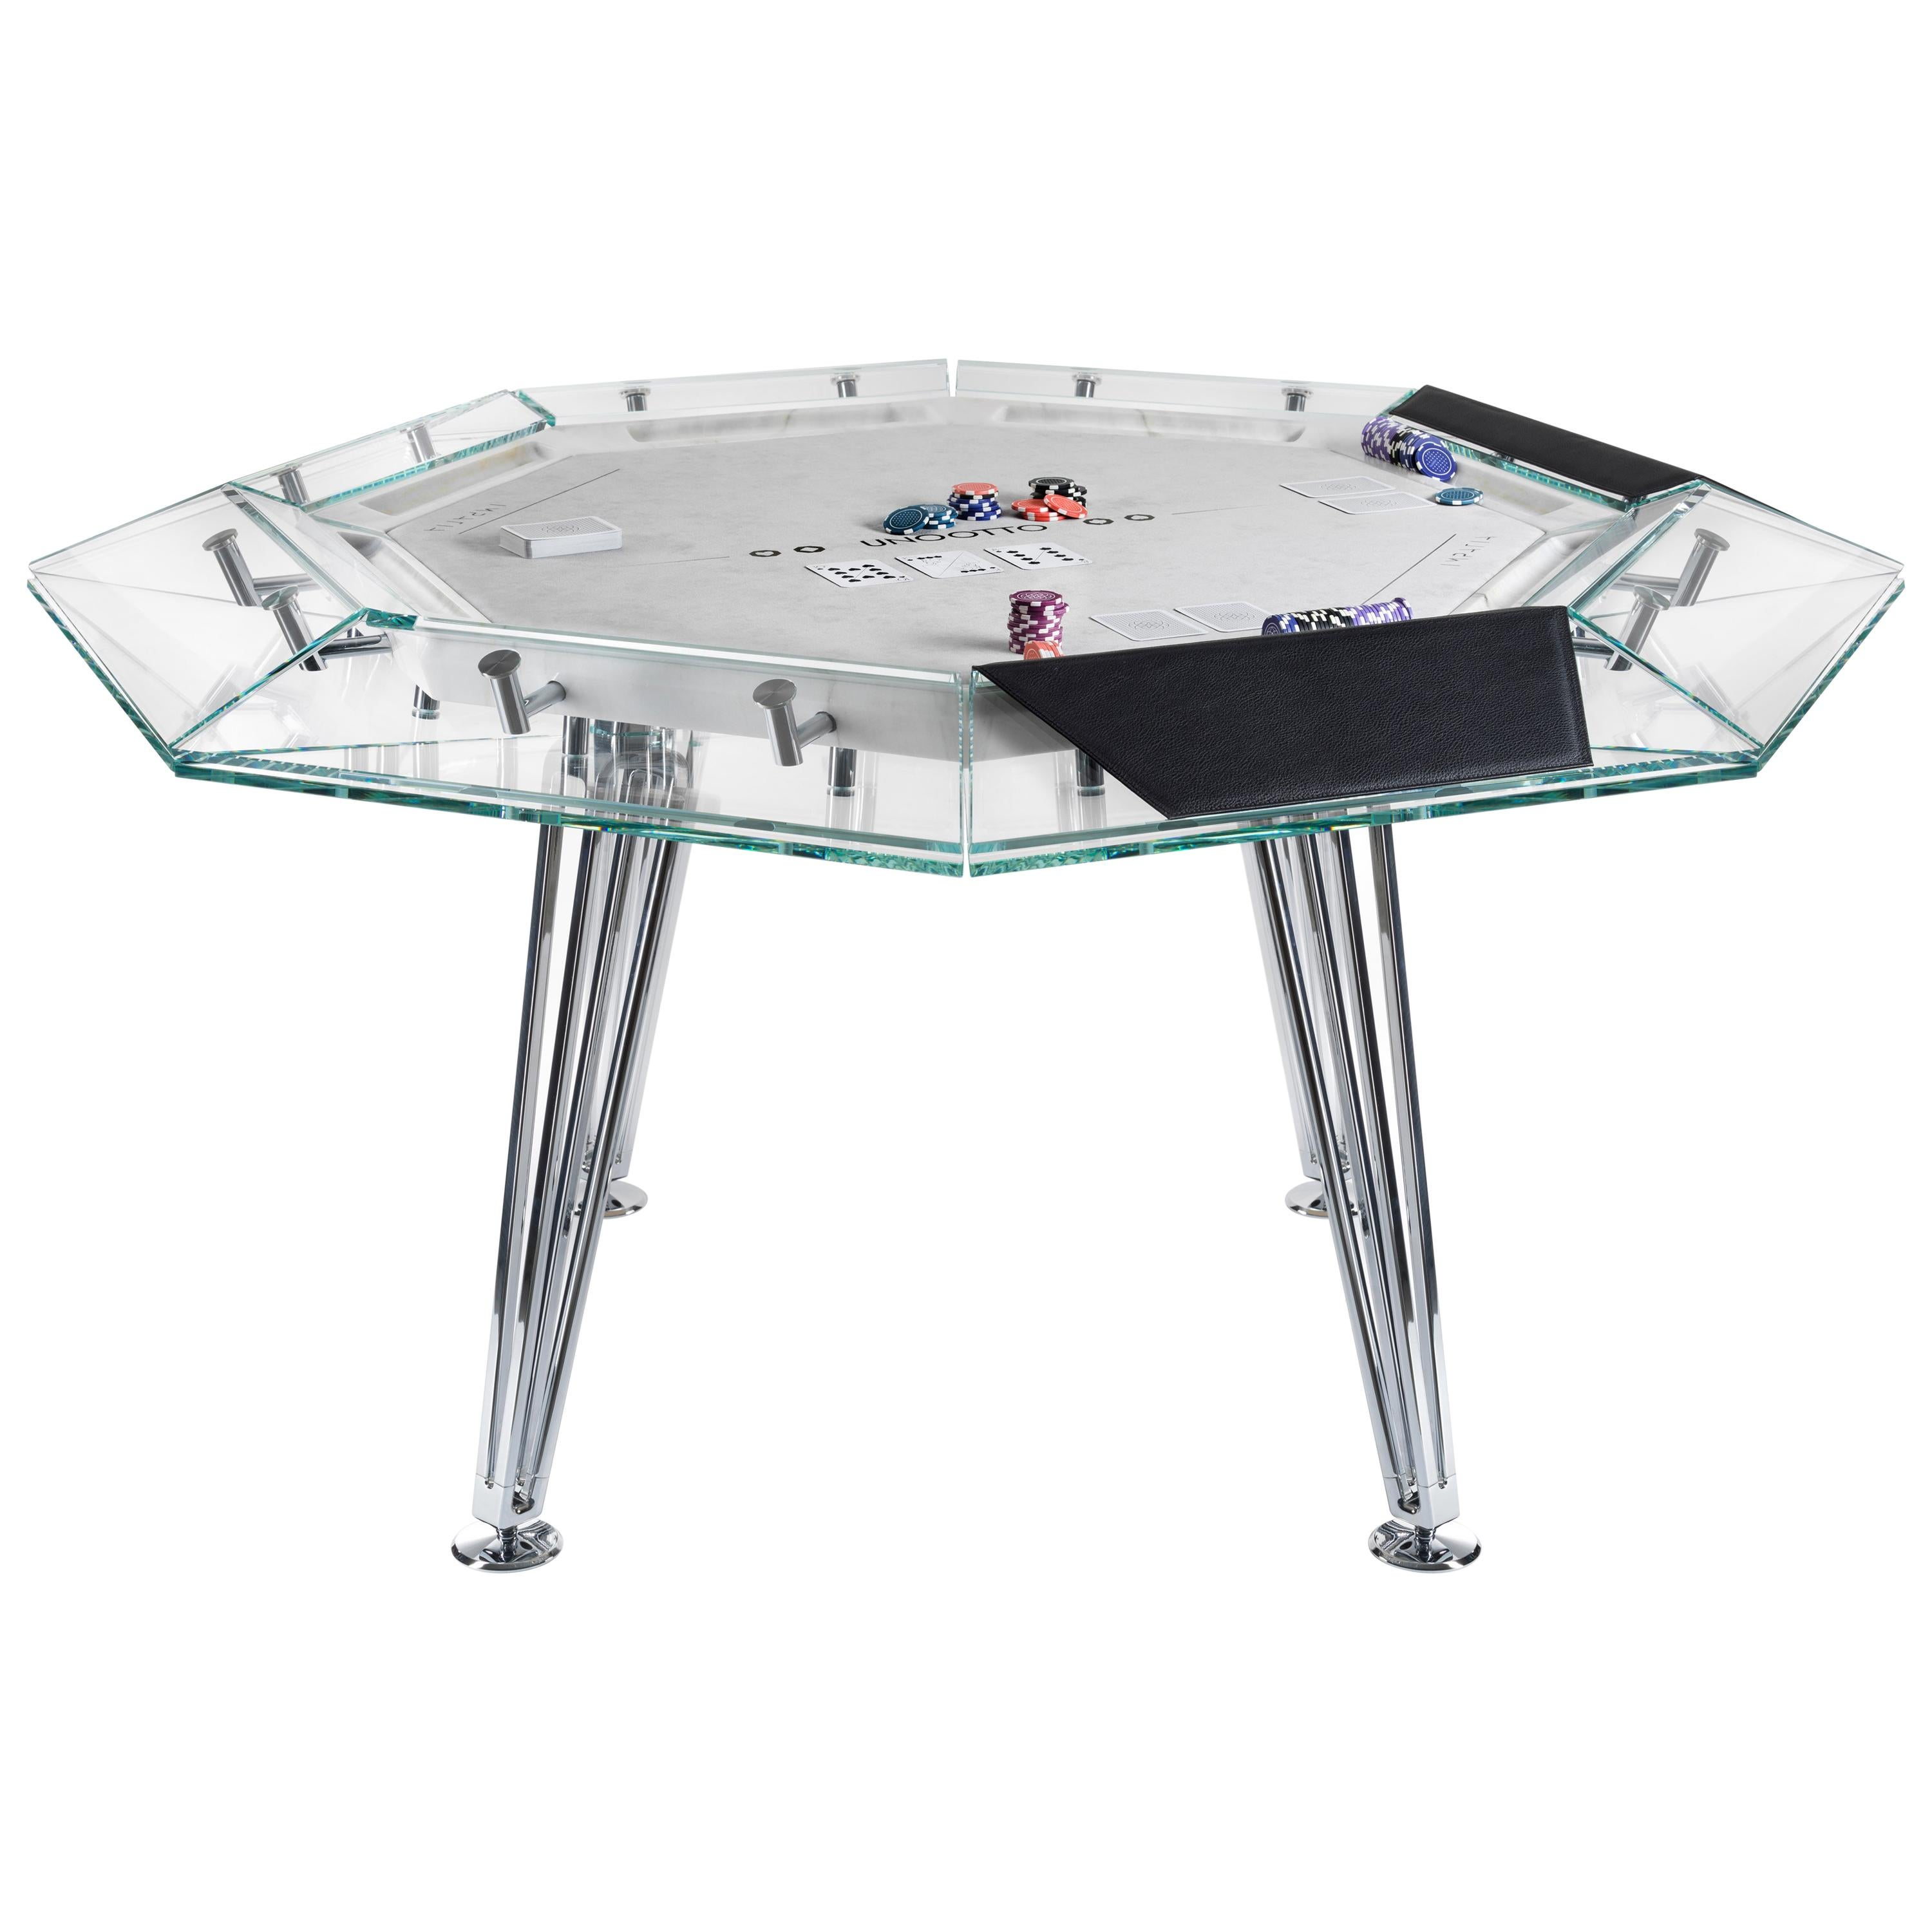 Unootto Marble Edition 8 Player Poker Table by Impatia